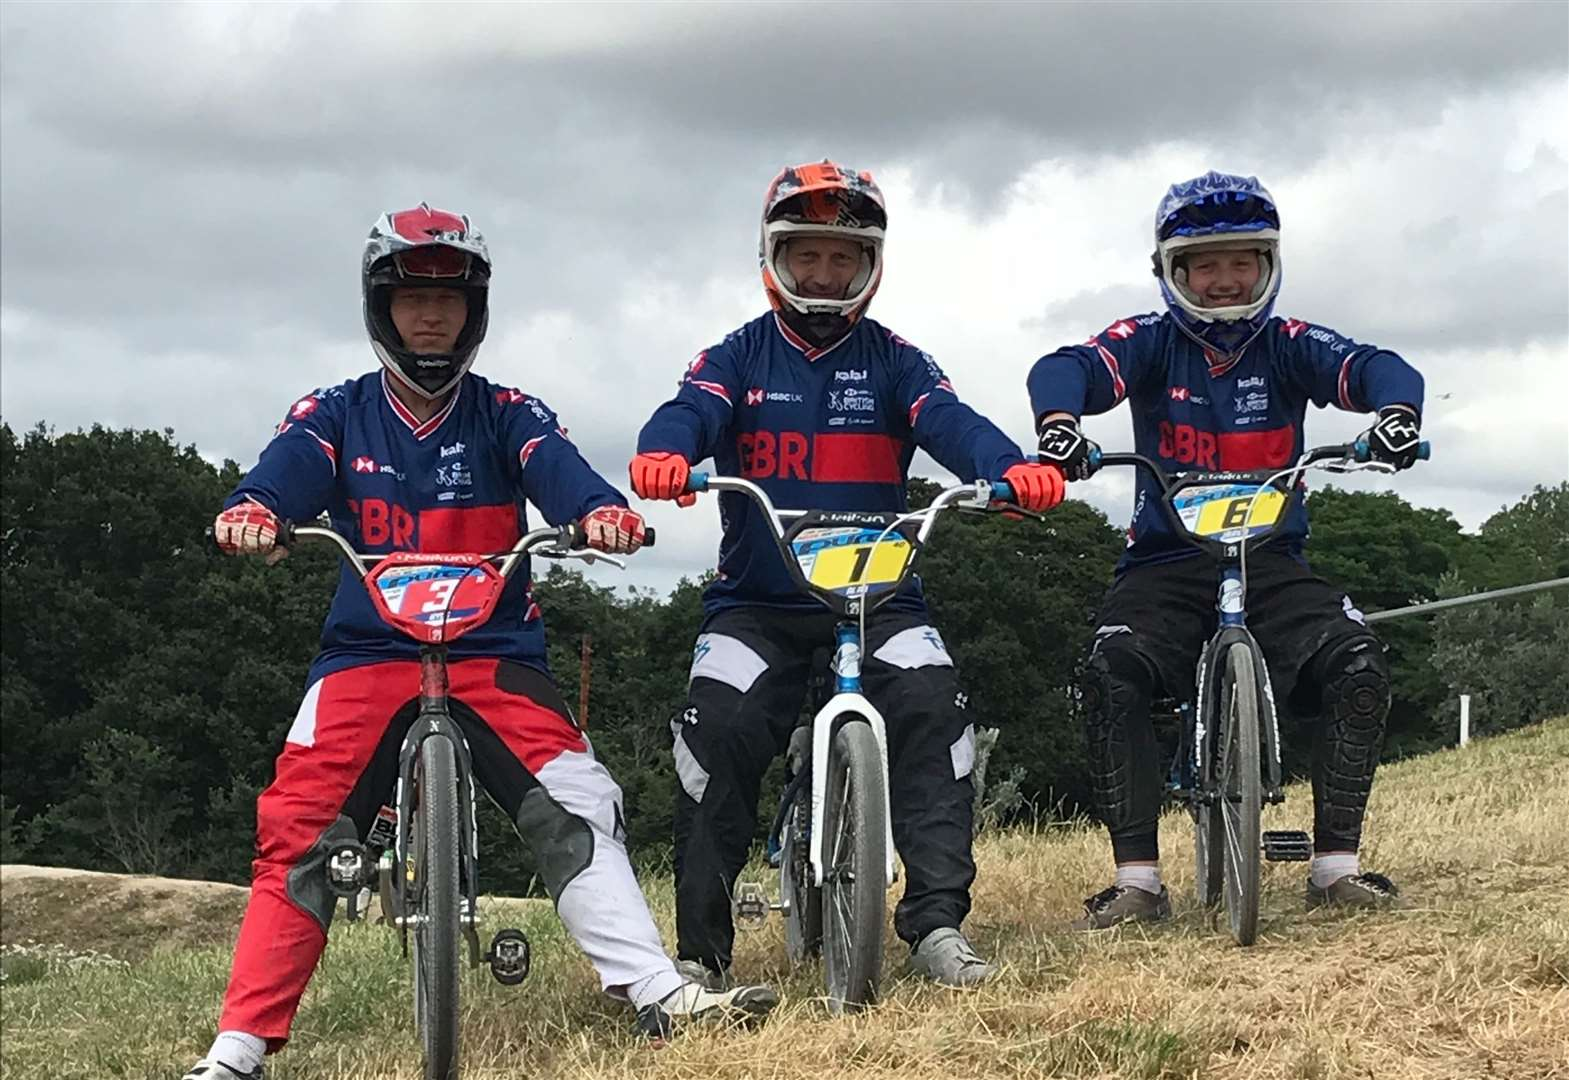 Hill family in Glasgow for British BMX series contests